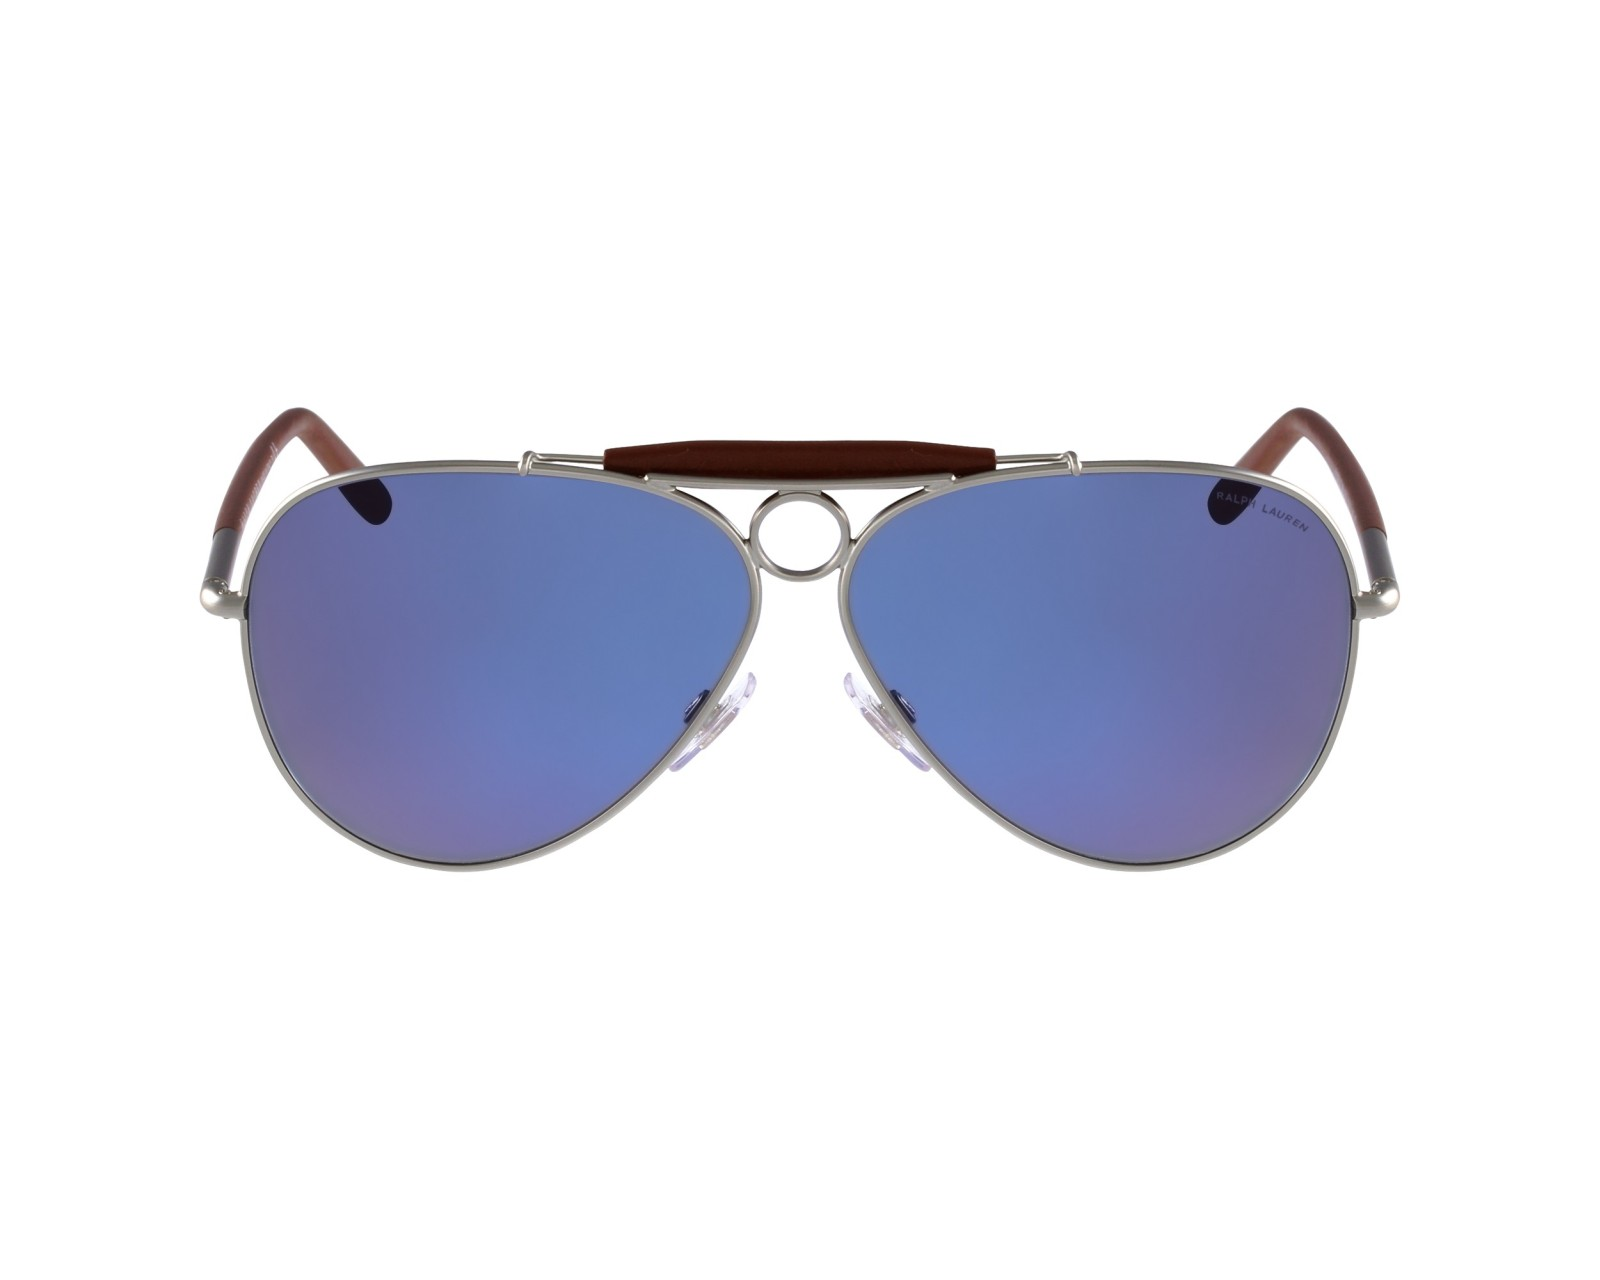 0b0fe63aaf Gafas De Sol Polo Ralph Lauren Mujer | United Nations System Chief ...